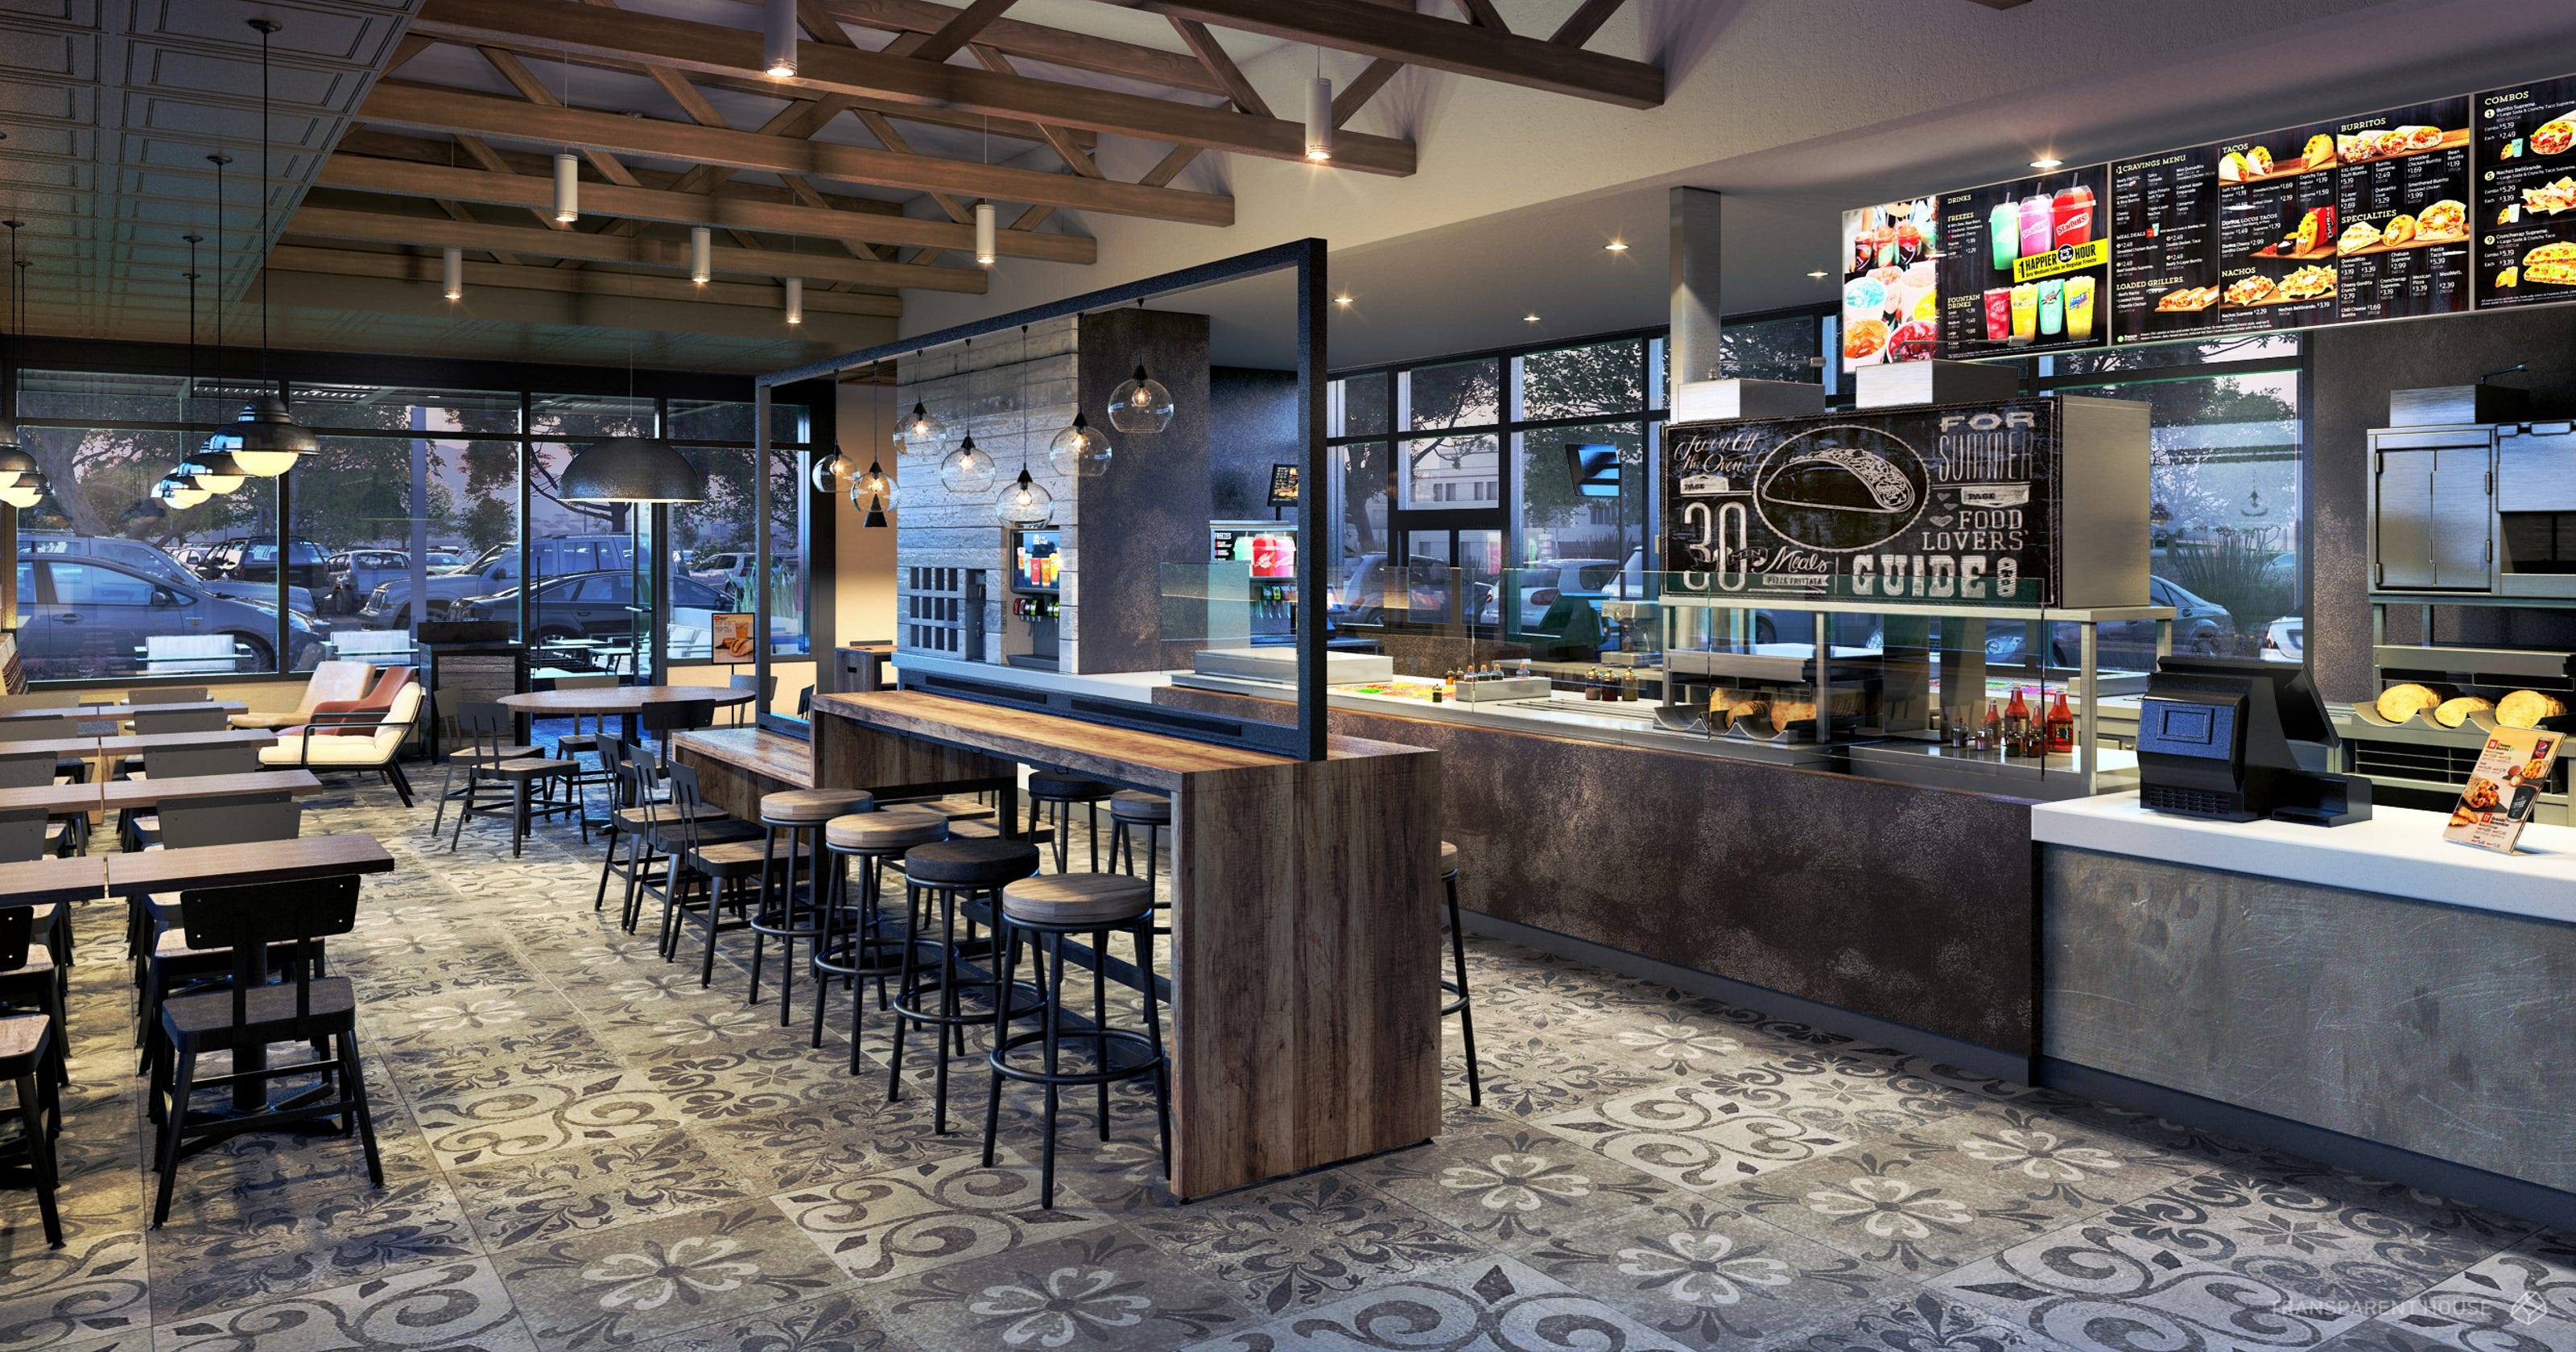 Taco Bell Tests Upscale Interiors To Boost Dinner Trade